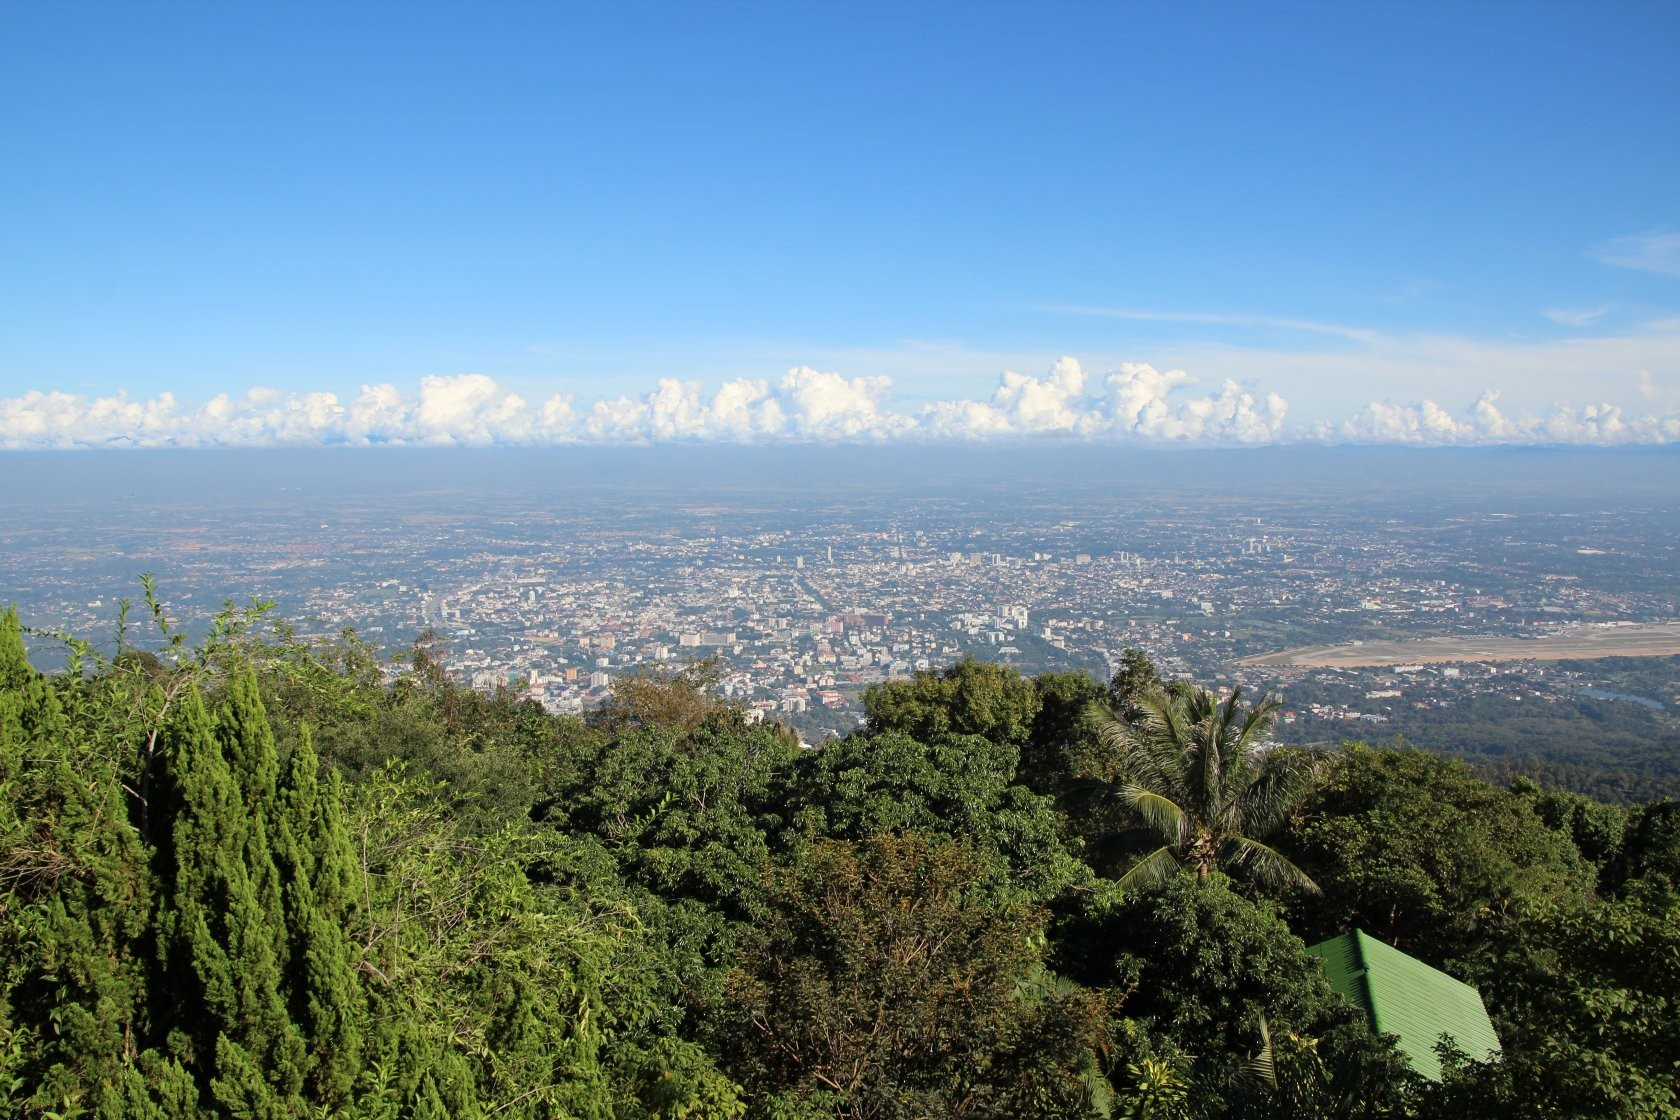 Chiang Mai - Rundgang durch die Stadt XLVIII (Blick auf Chiang Mai)